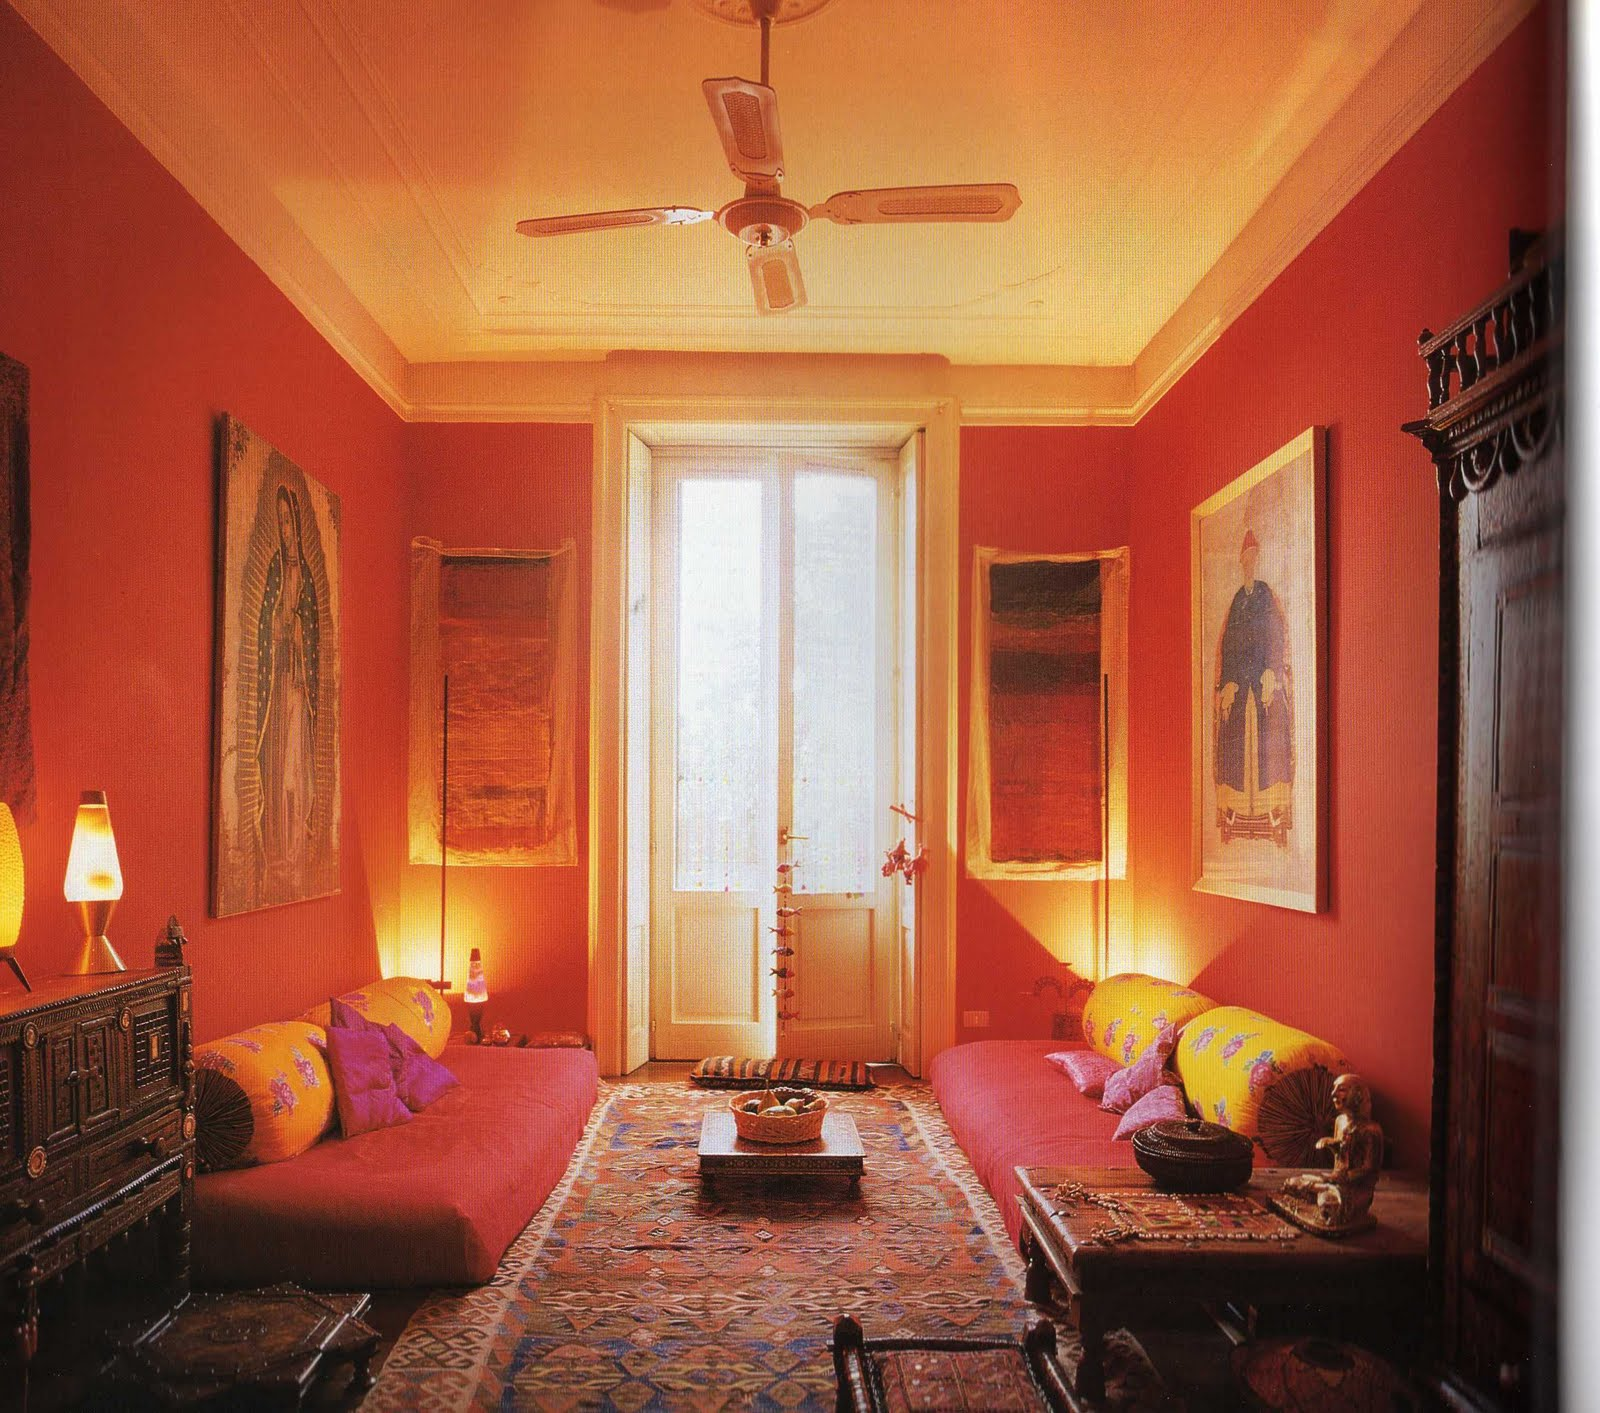 50 Indian Interior Design Ideas: Saffron And Silk: Indian Style